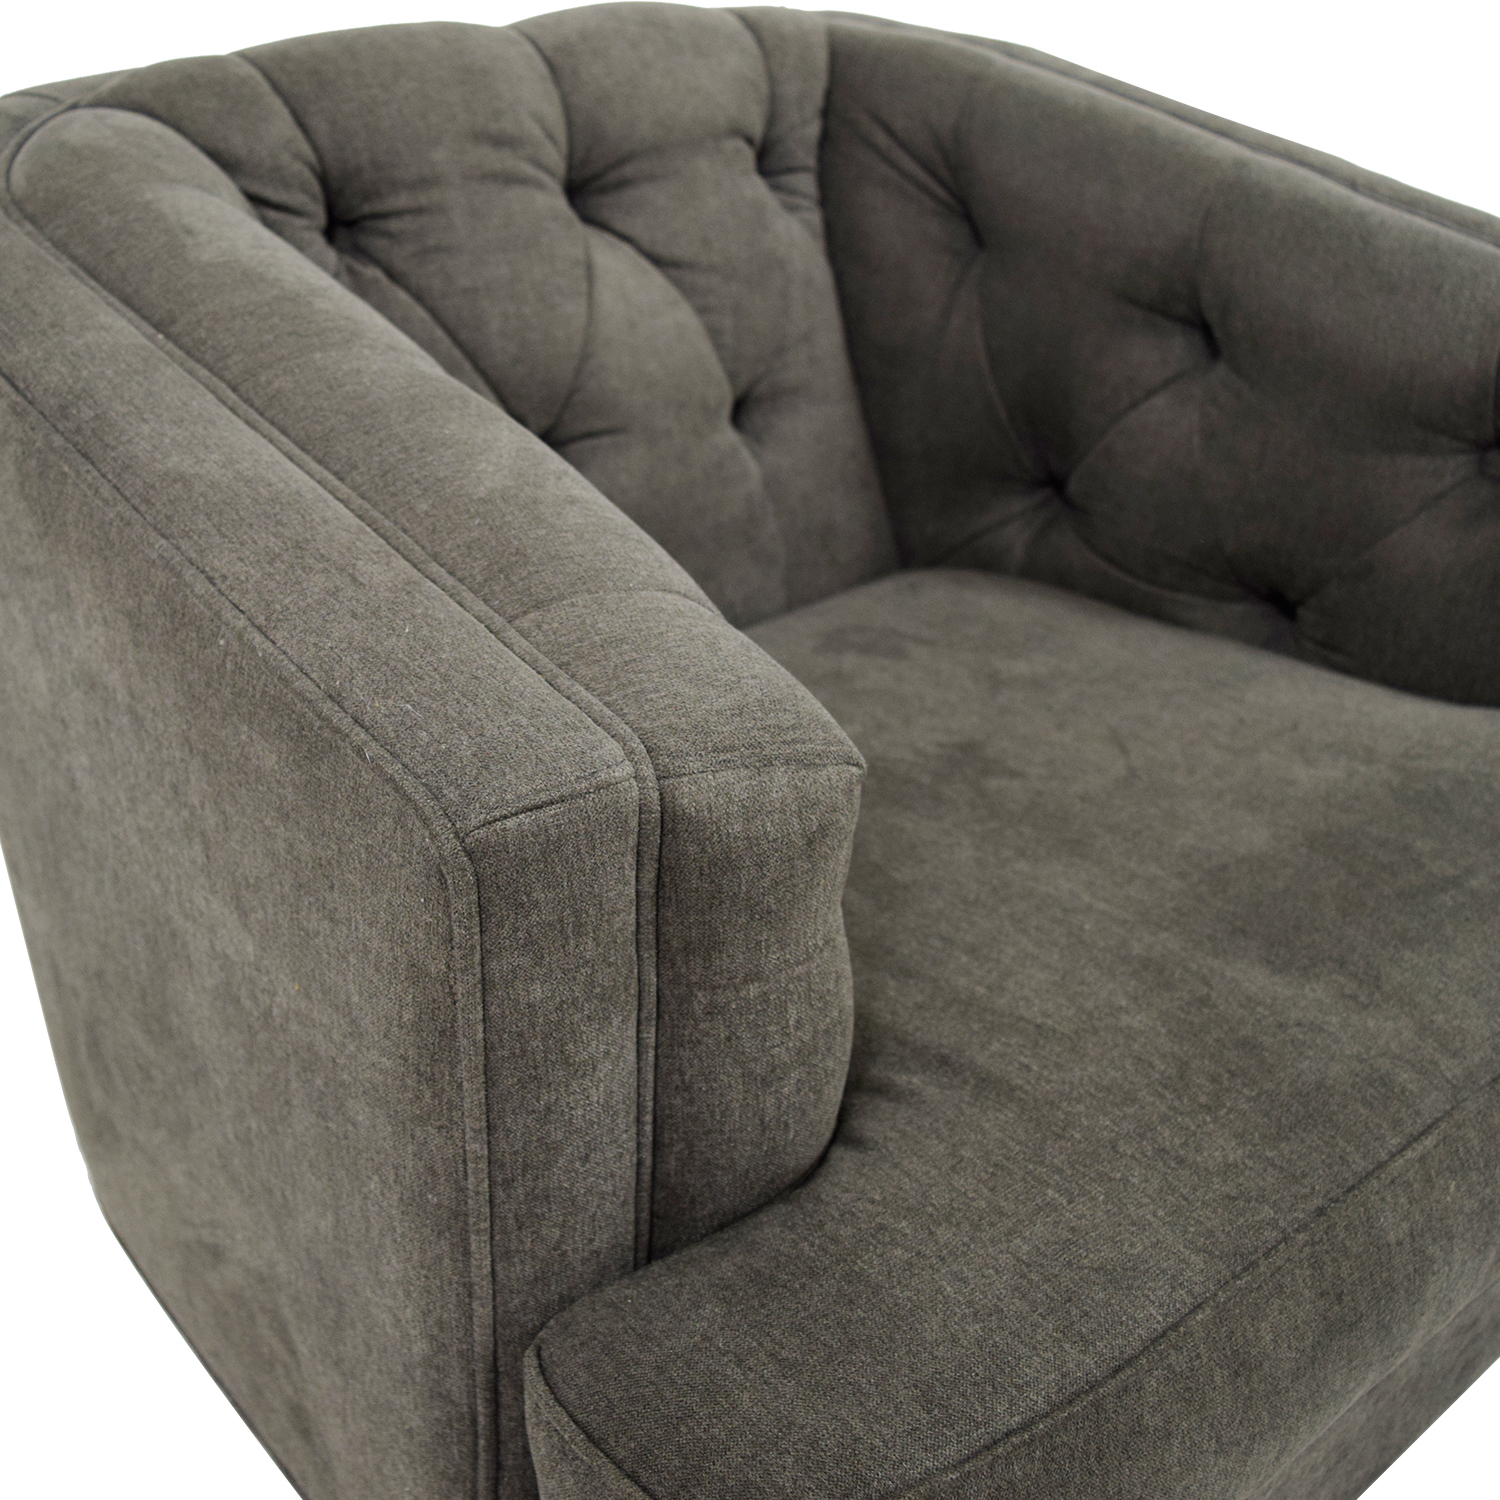 55% OFF Rooms To Go Rooms To Go Grey Tufted Chair Chairs